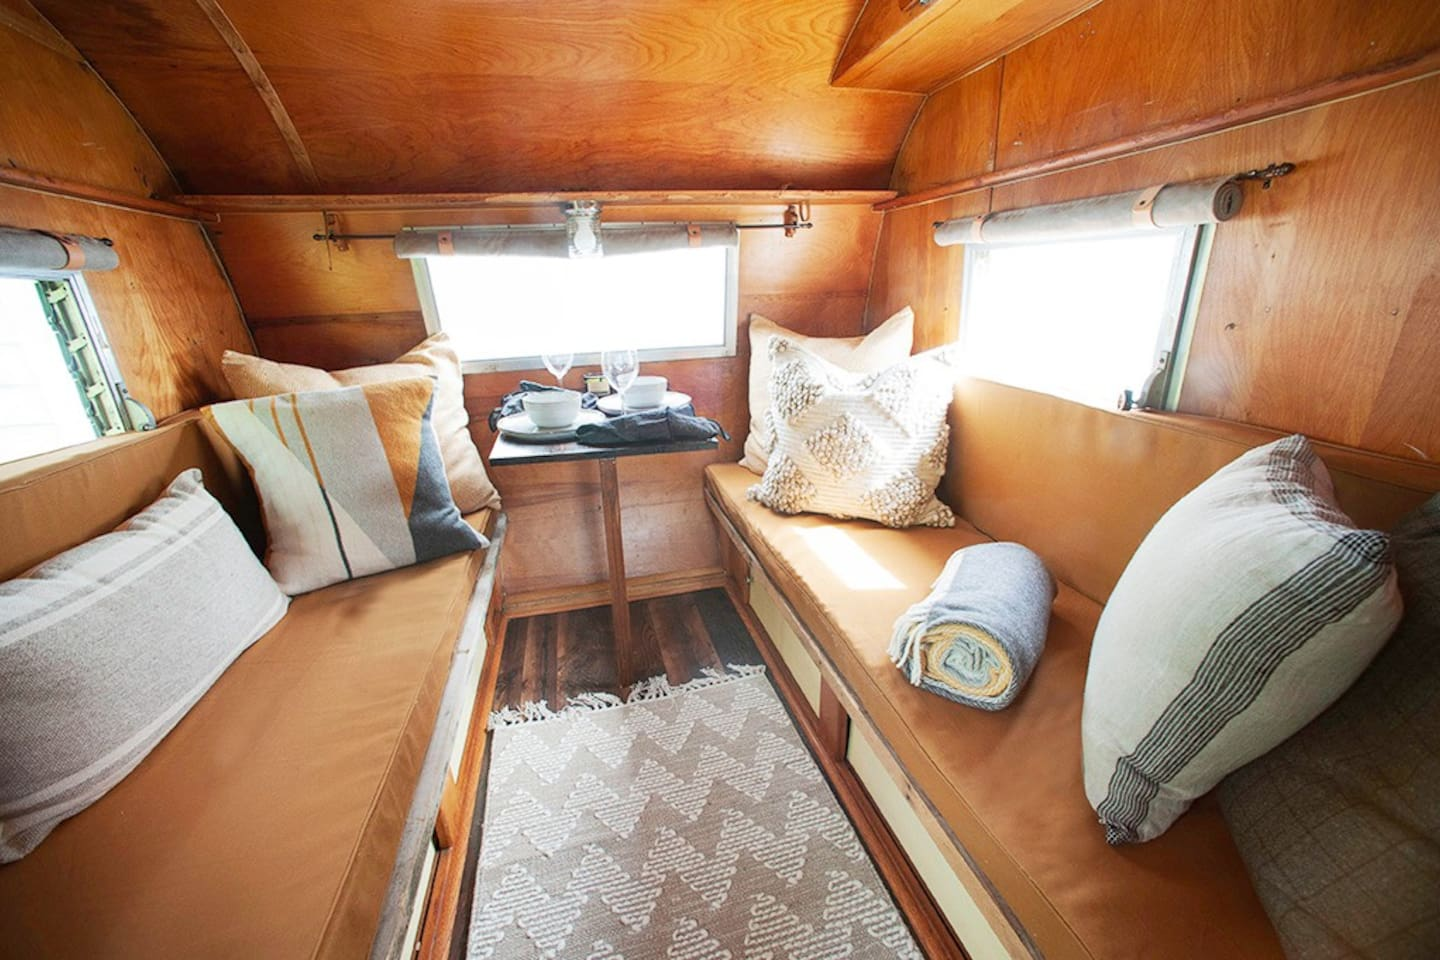 The camper can sleep 2 comfortably.